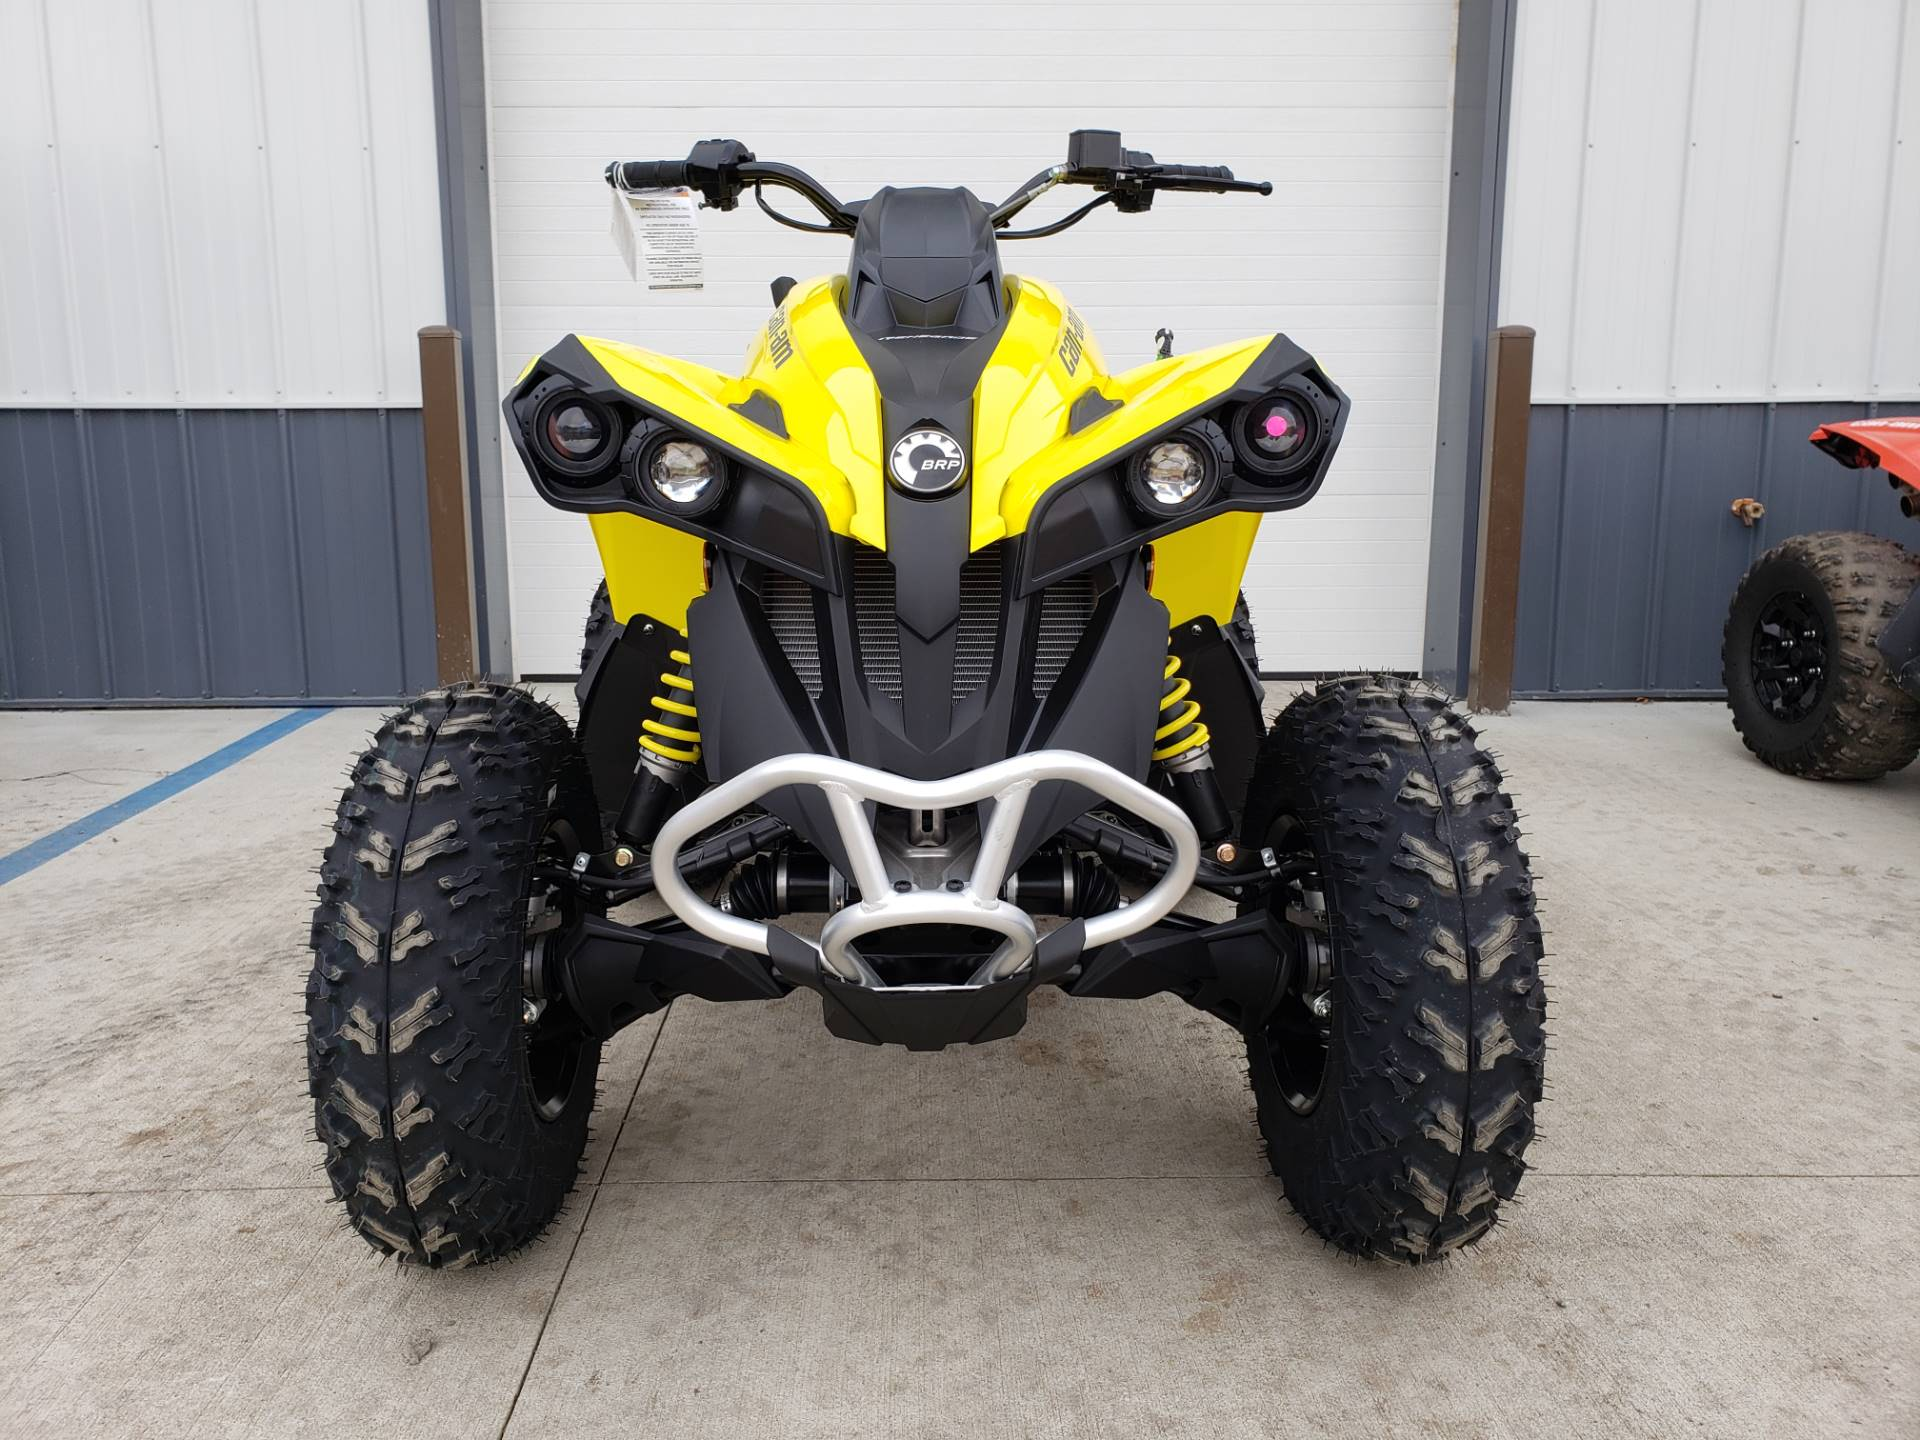 2020 Can-Am Renegade 570 in Cambridge, Ohio - Photo 3